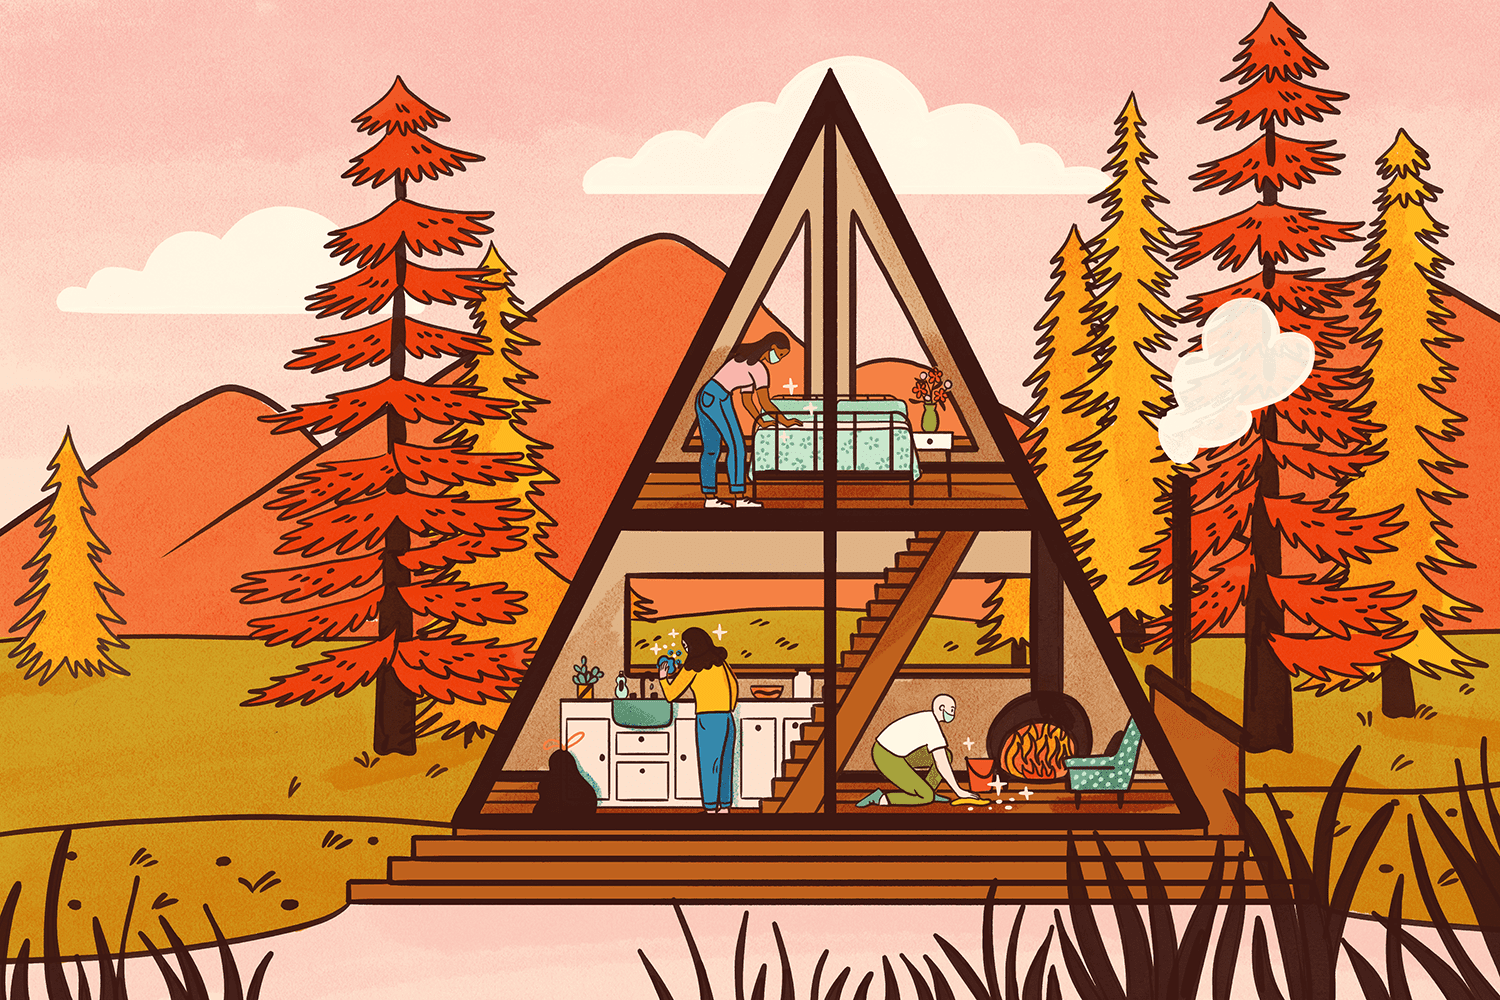 Illustration showing a cleaning crew cleaning an Airbnb Cabin